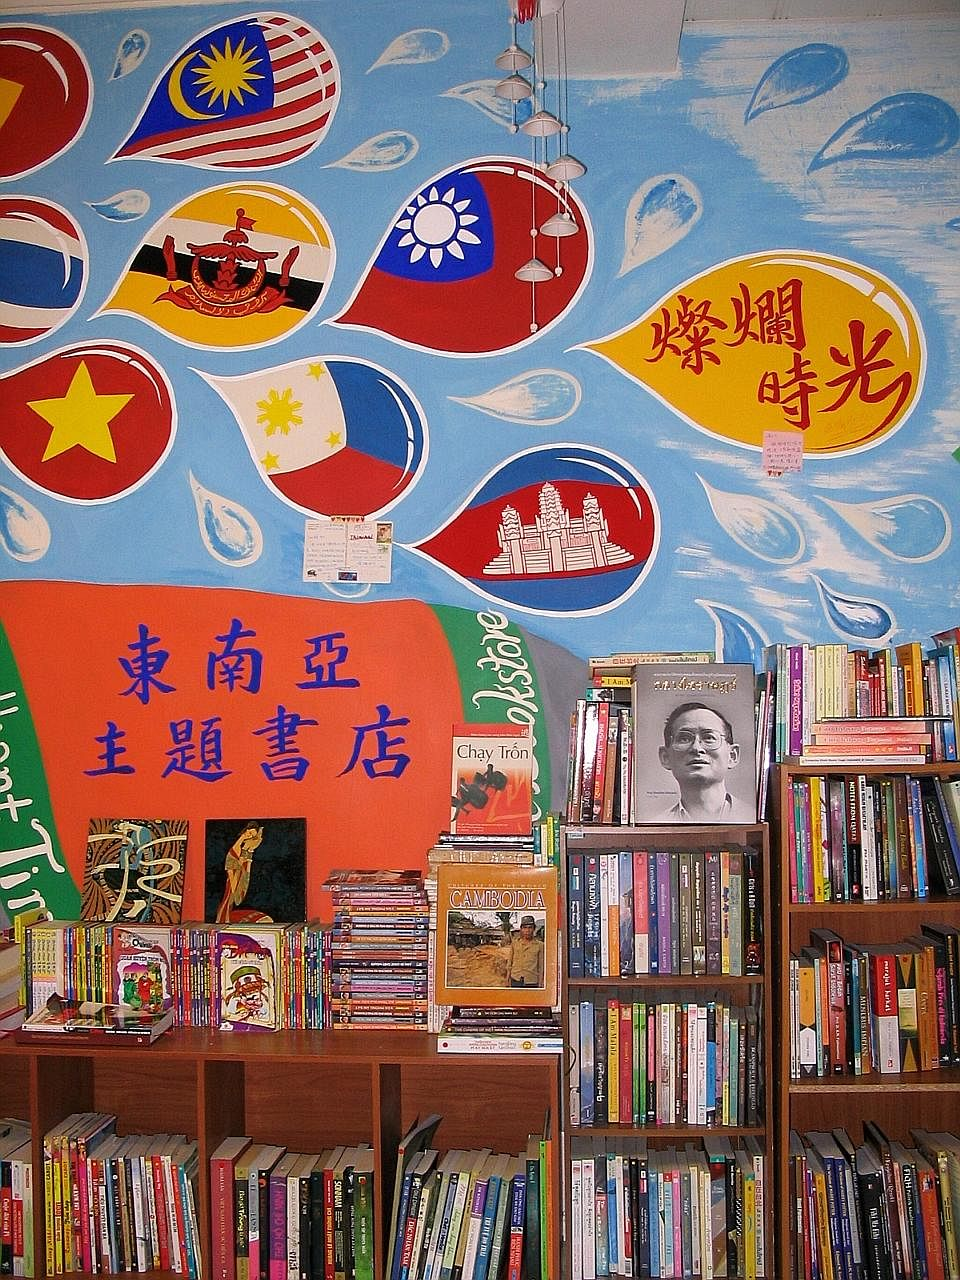 Brilliant Time, an independent bookstore in Taipei which stocks books with a South-east Asia theme. Taiwan's New Southbound Policy is aimed at boosting not just trade and investment but also education and cultural links between Taiwan and 18 countrie